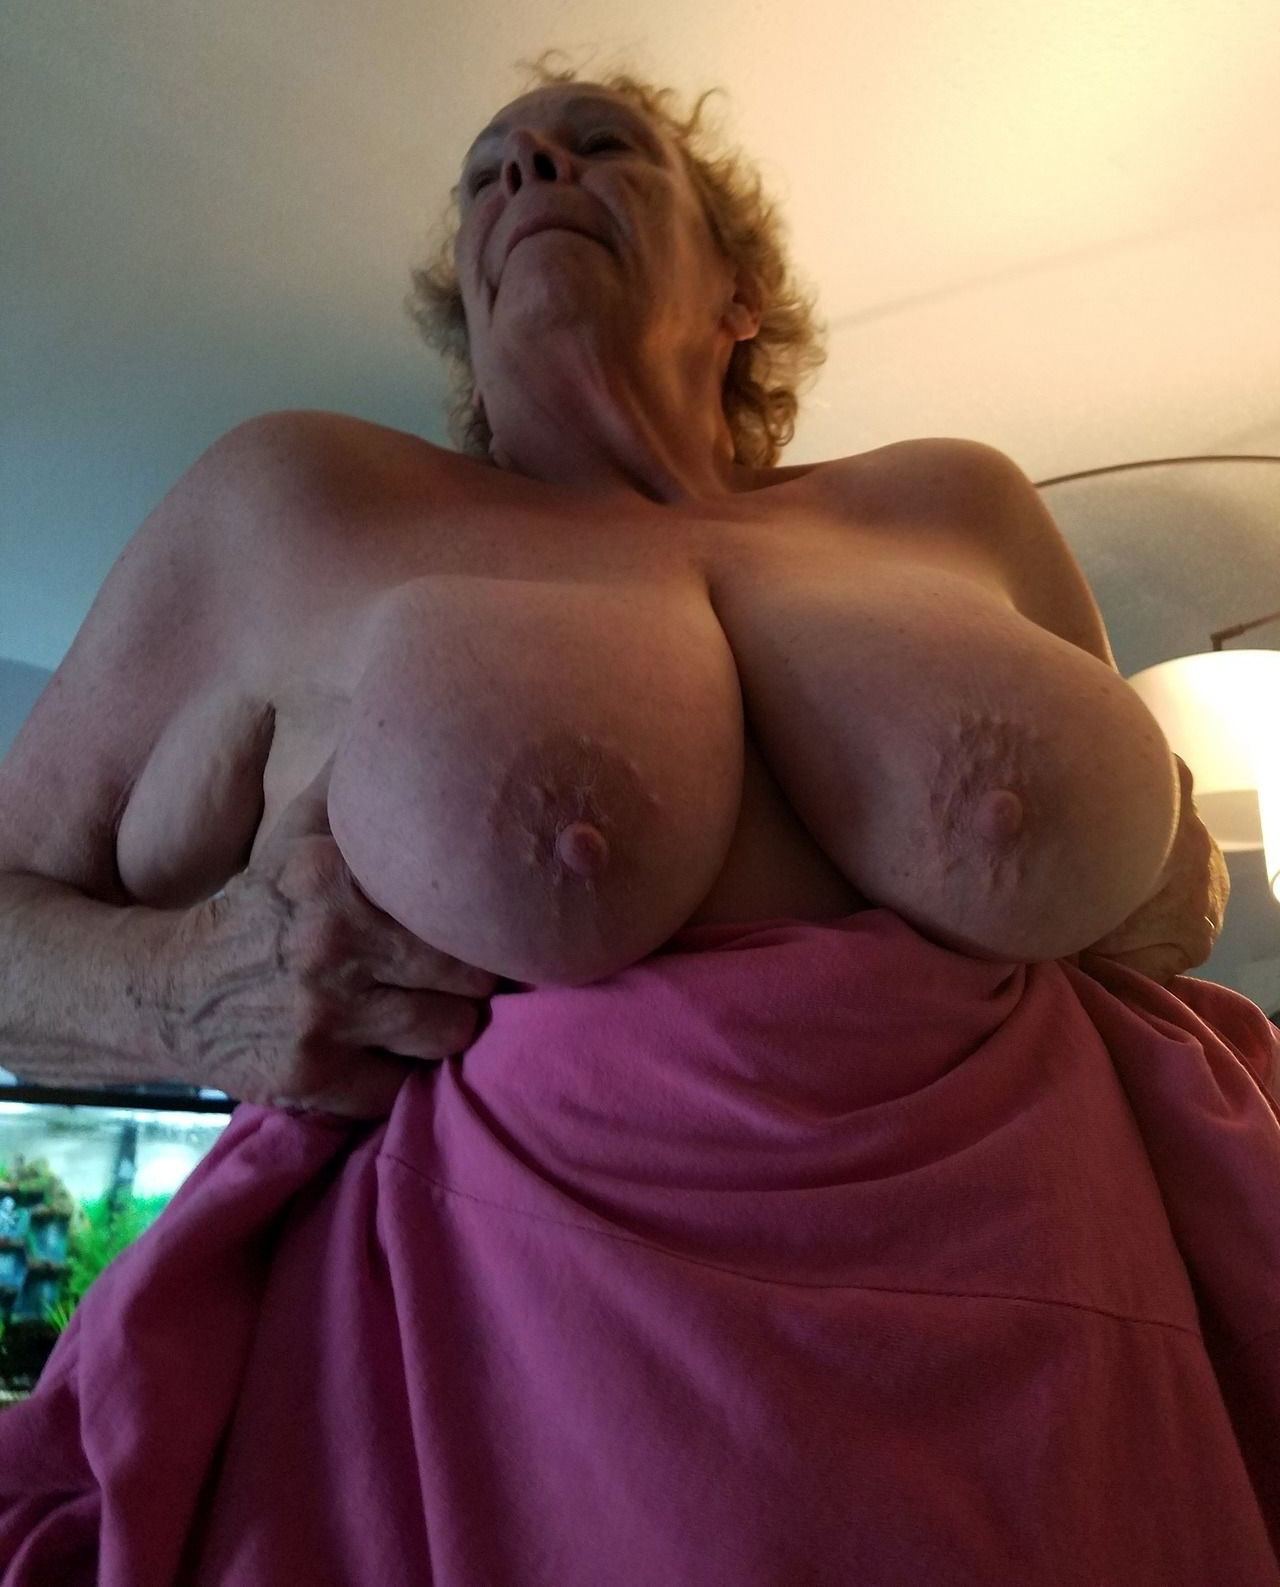 tits with grannies floppy